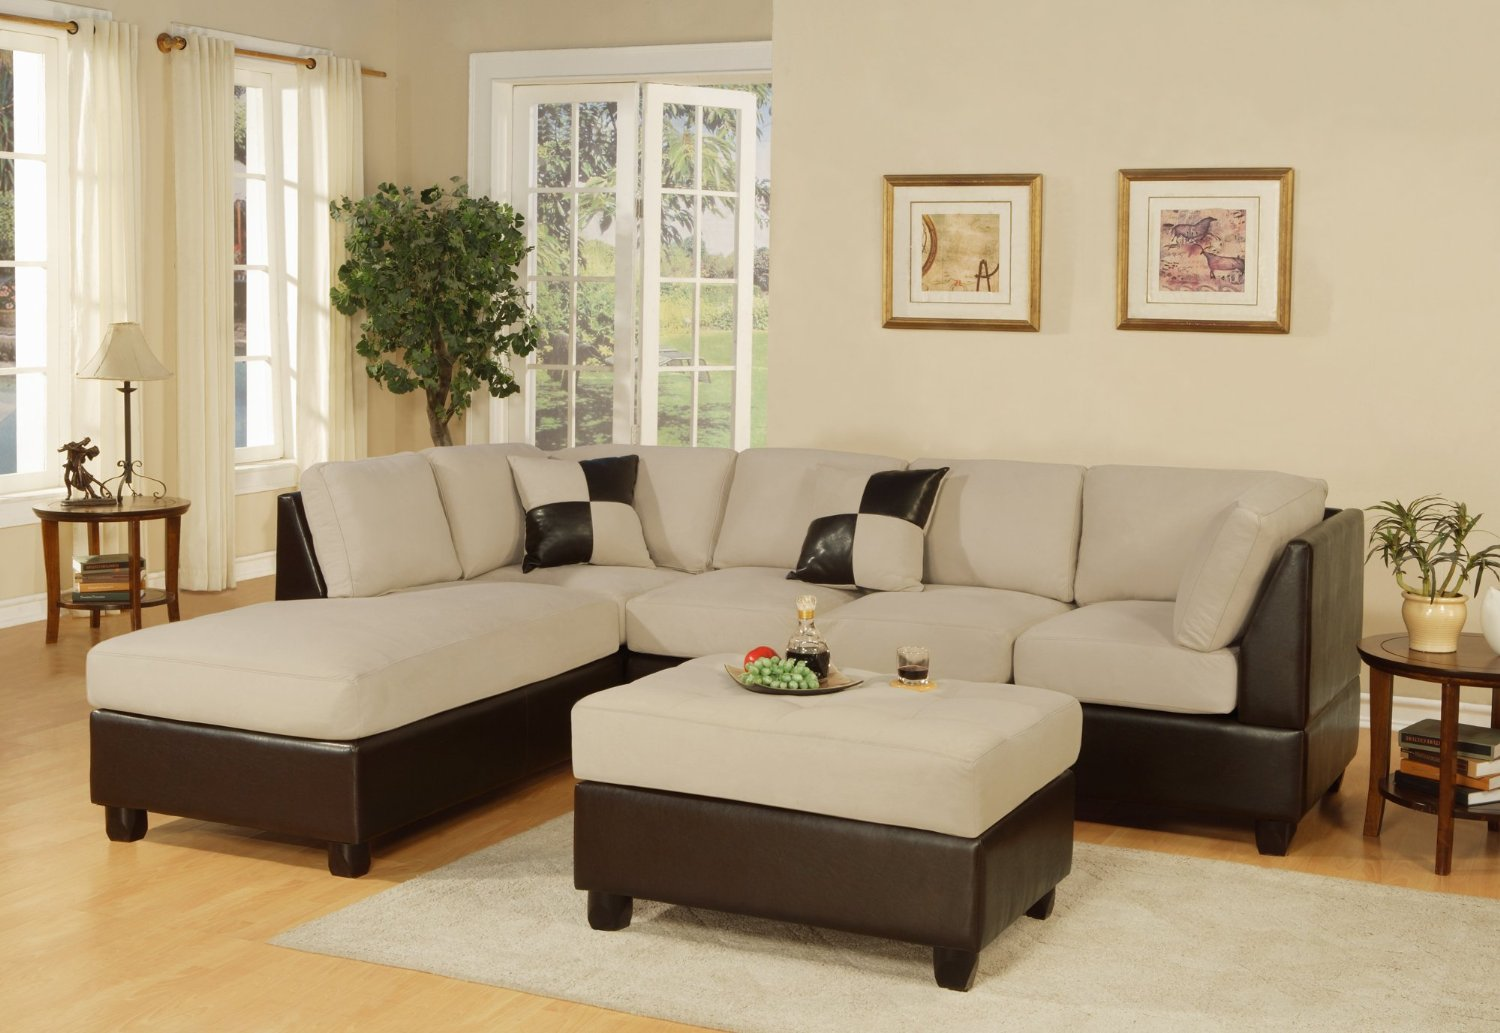 Sitting Room Couches Of 10 Inspiring Sofa 39 S For An Elegant Living Room